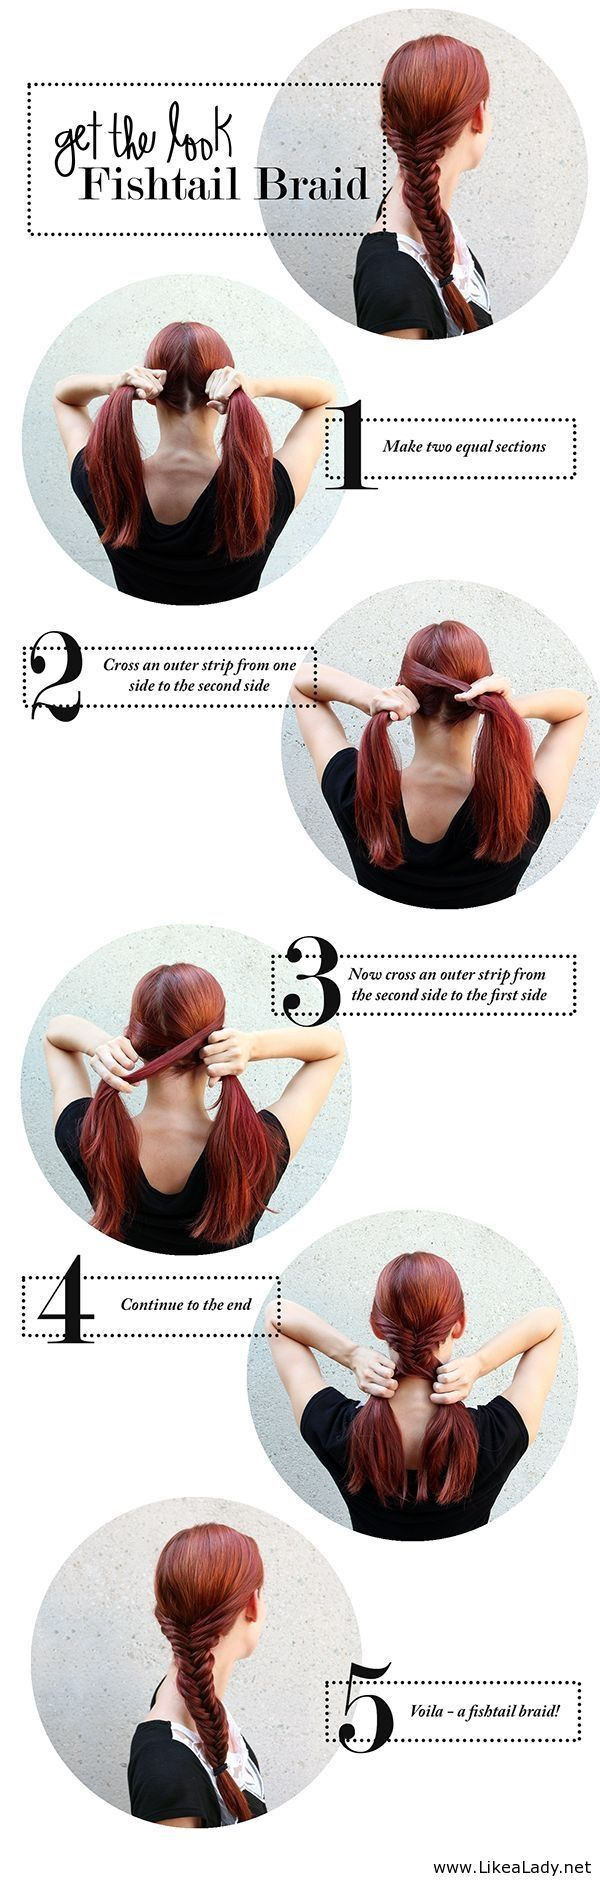 Get the look - Fishtail braid